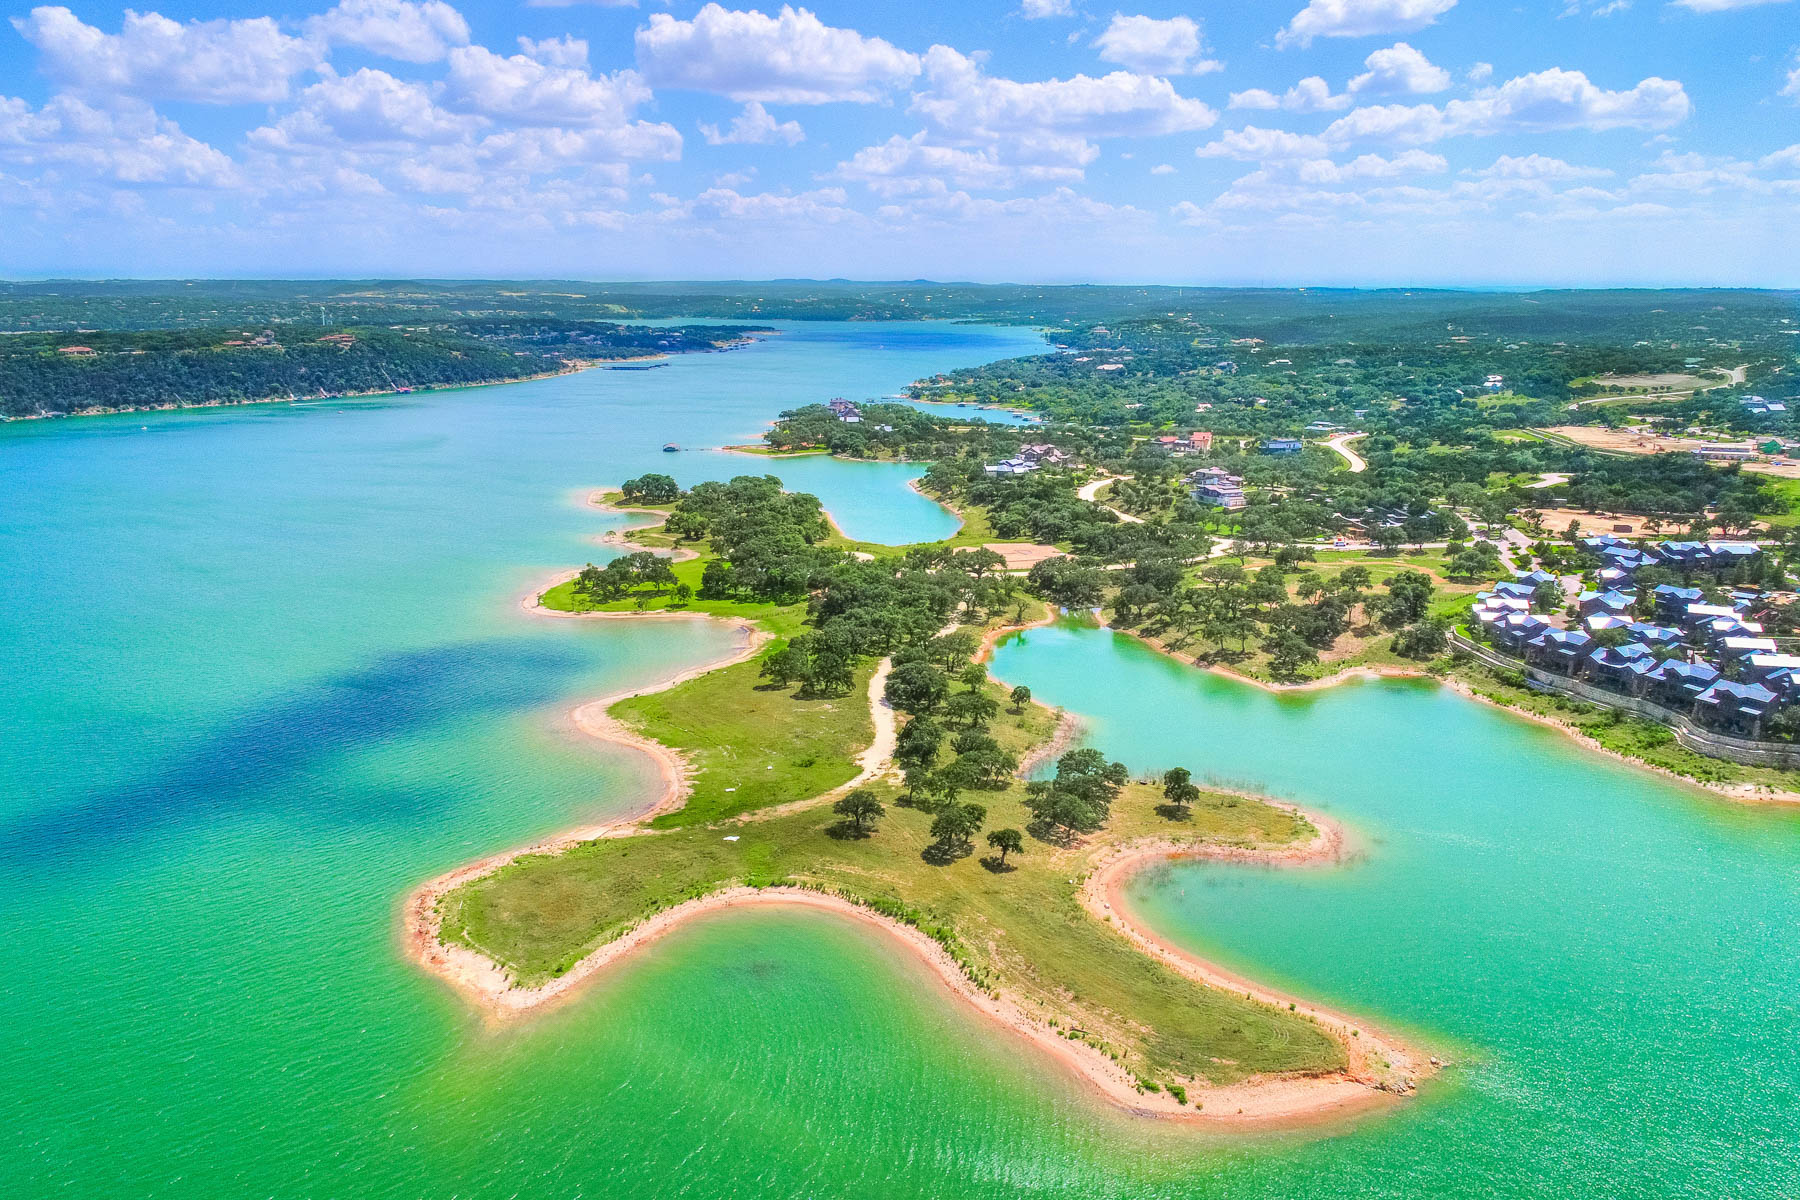 Terreno por un Venta en The Reserve on Lake Travis: 12.24 Waterfront Acres 2200 Cypress Club Pointe, Spicewood, Texas, 78669 Estados Unidos